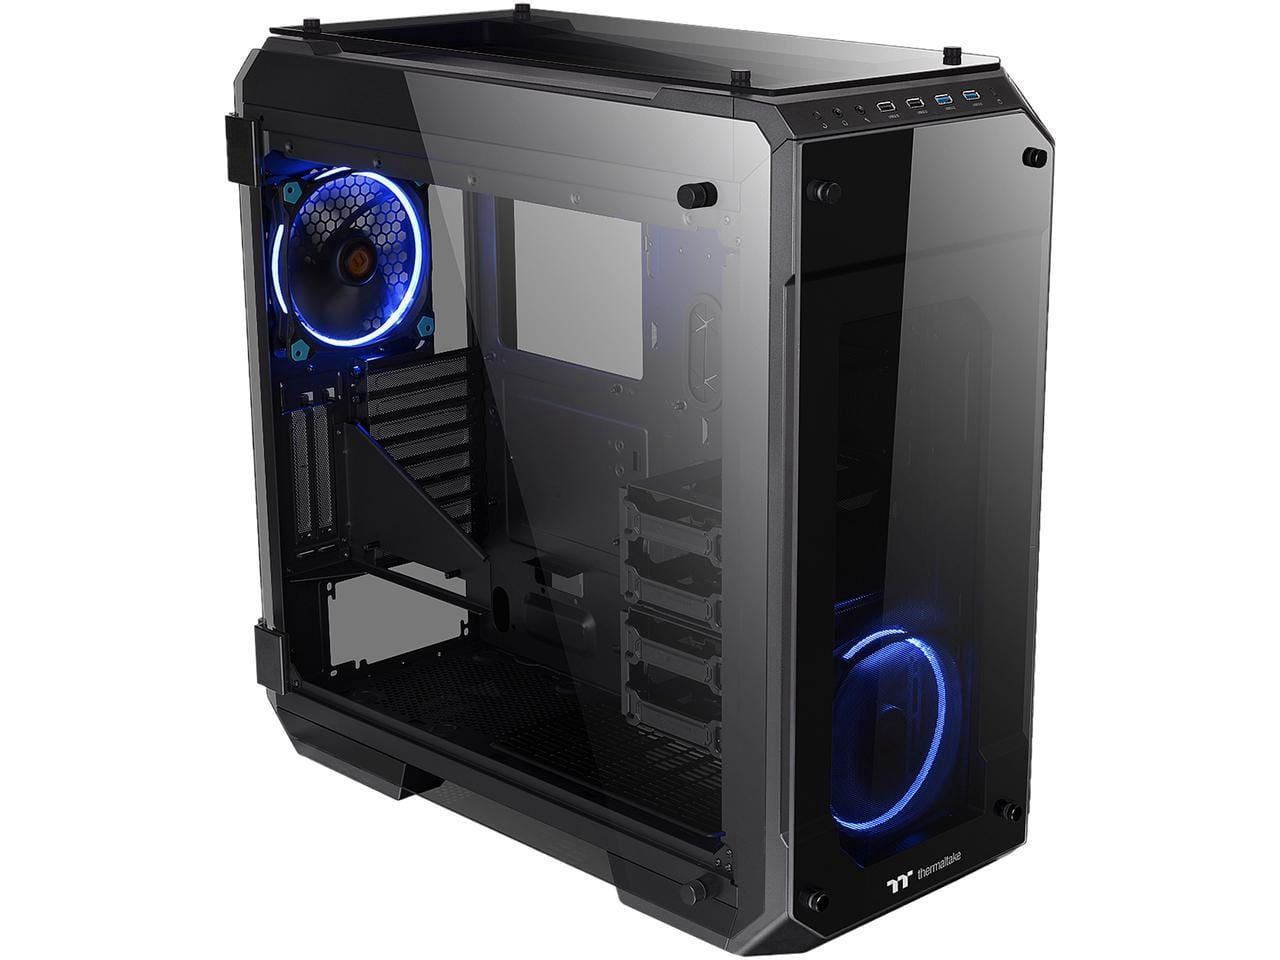 Thermaltake View 71 4-Sided Tempered Glass Vertical GPU Modular SPCC E-ATX Gaming Full Tower Computer Case $99.99